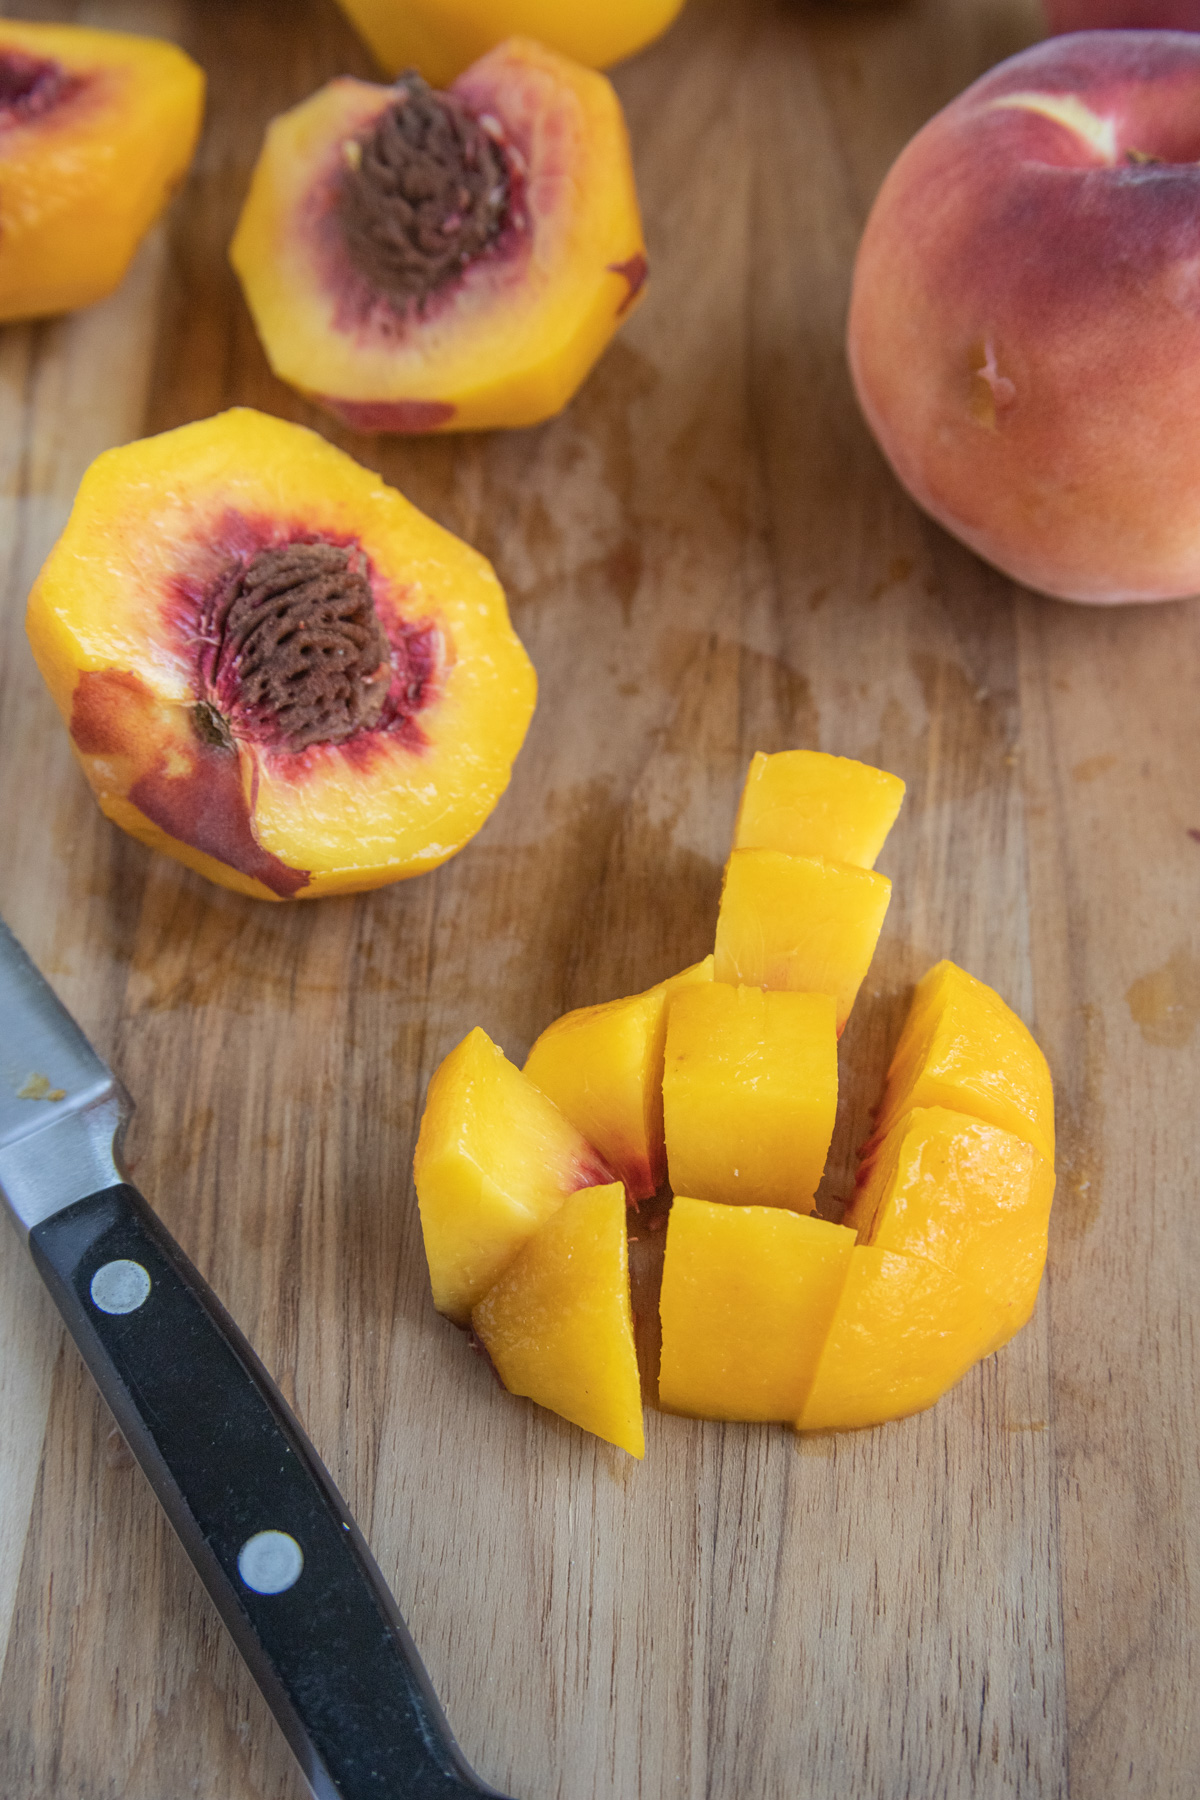 Chopped peaches on a wooden cutting board